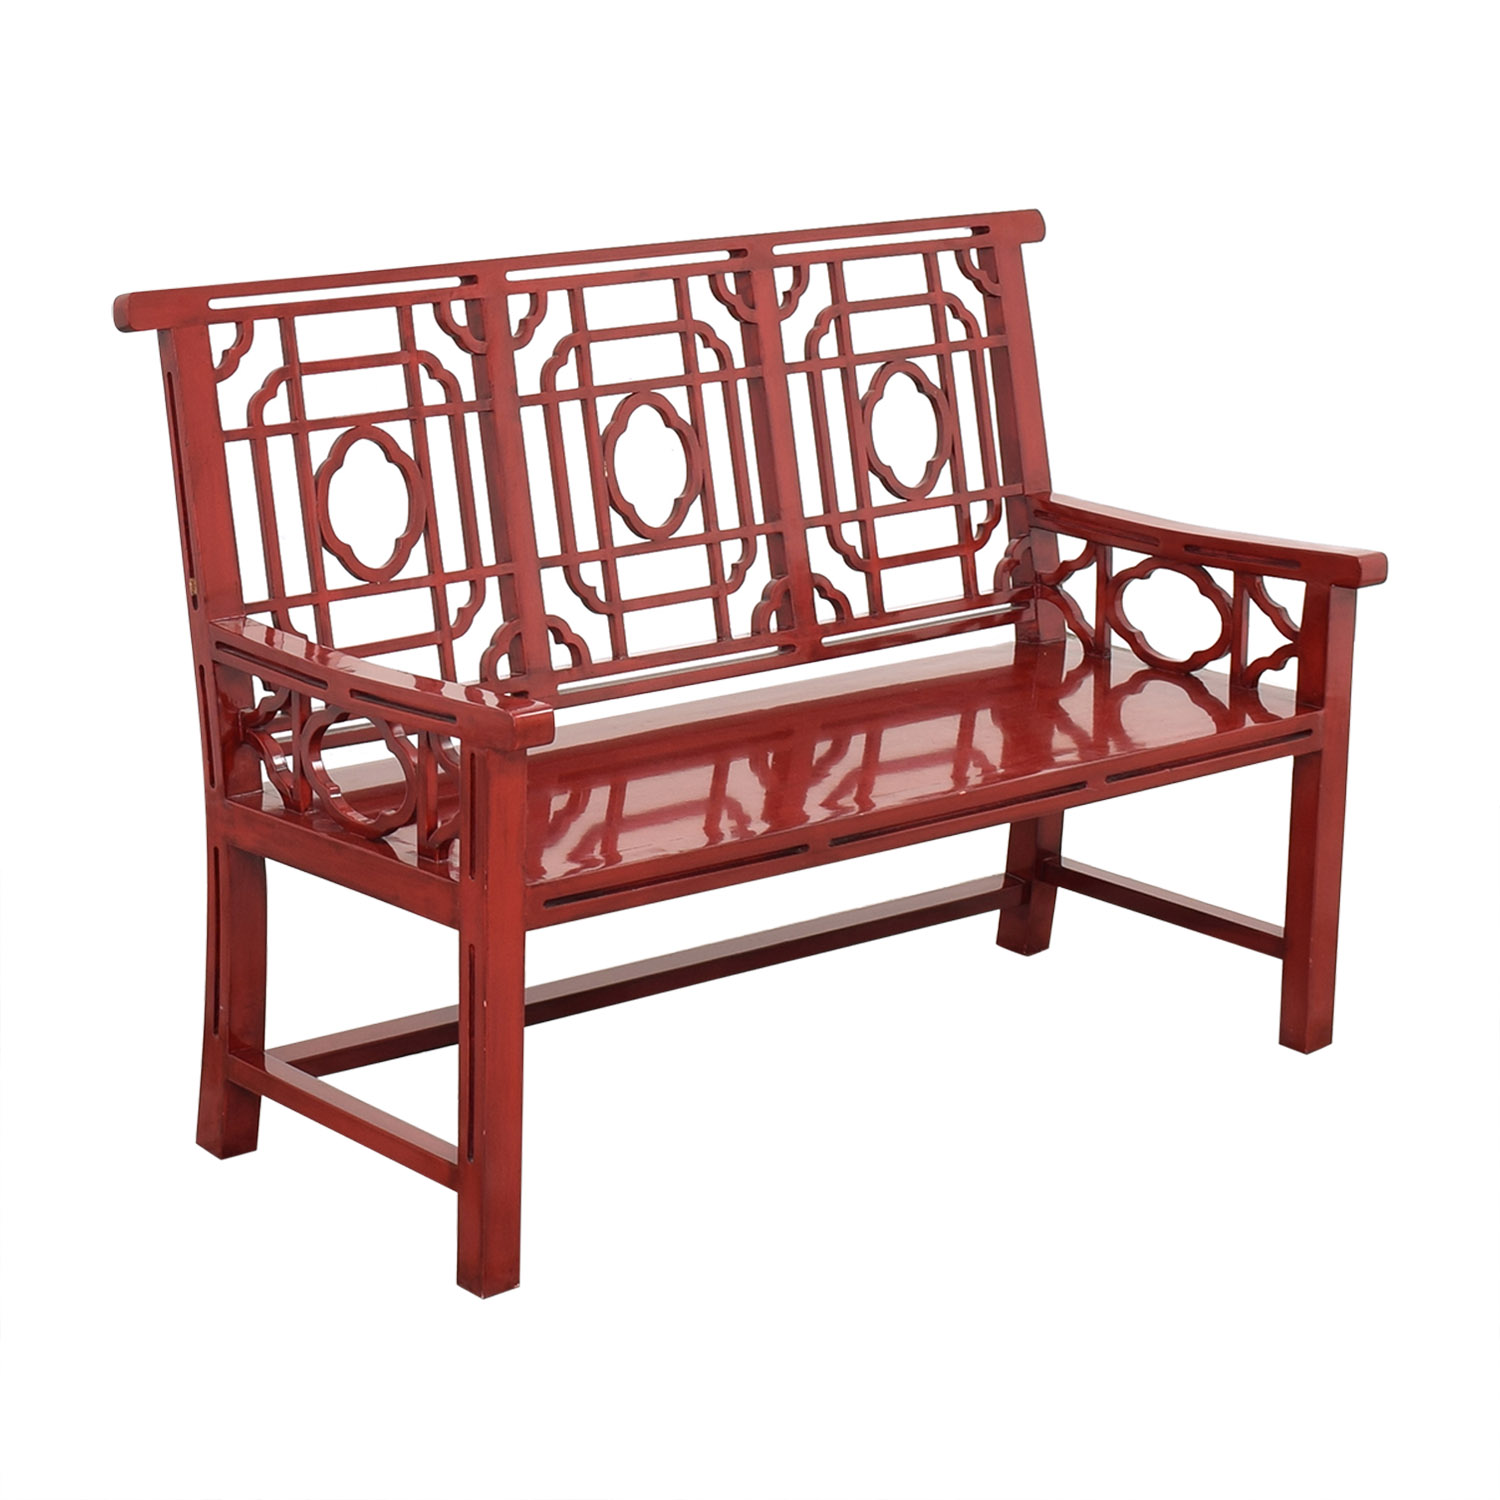 Neiman Marcus Neiman Marcus Chinese Lacquer Bench Benches